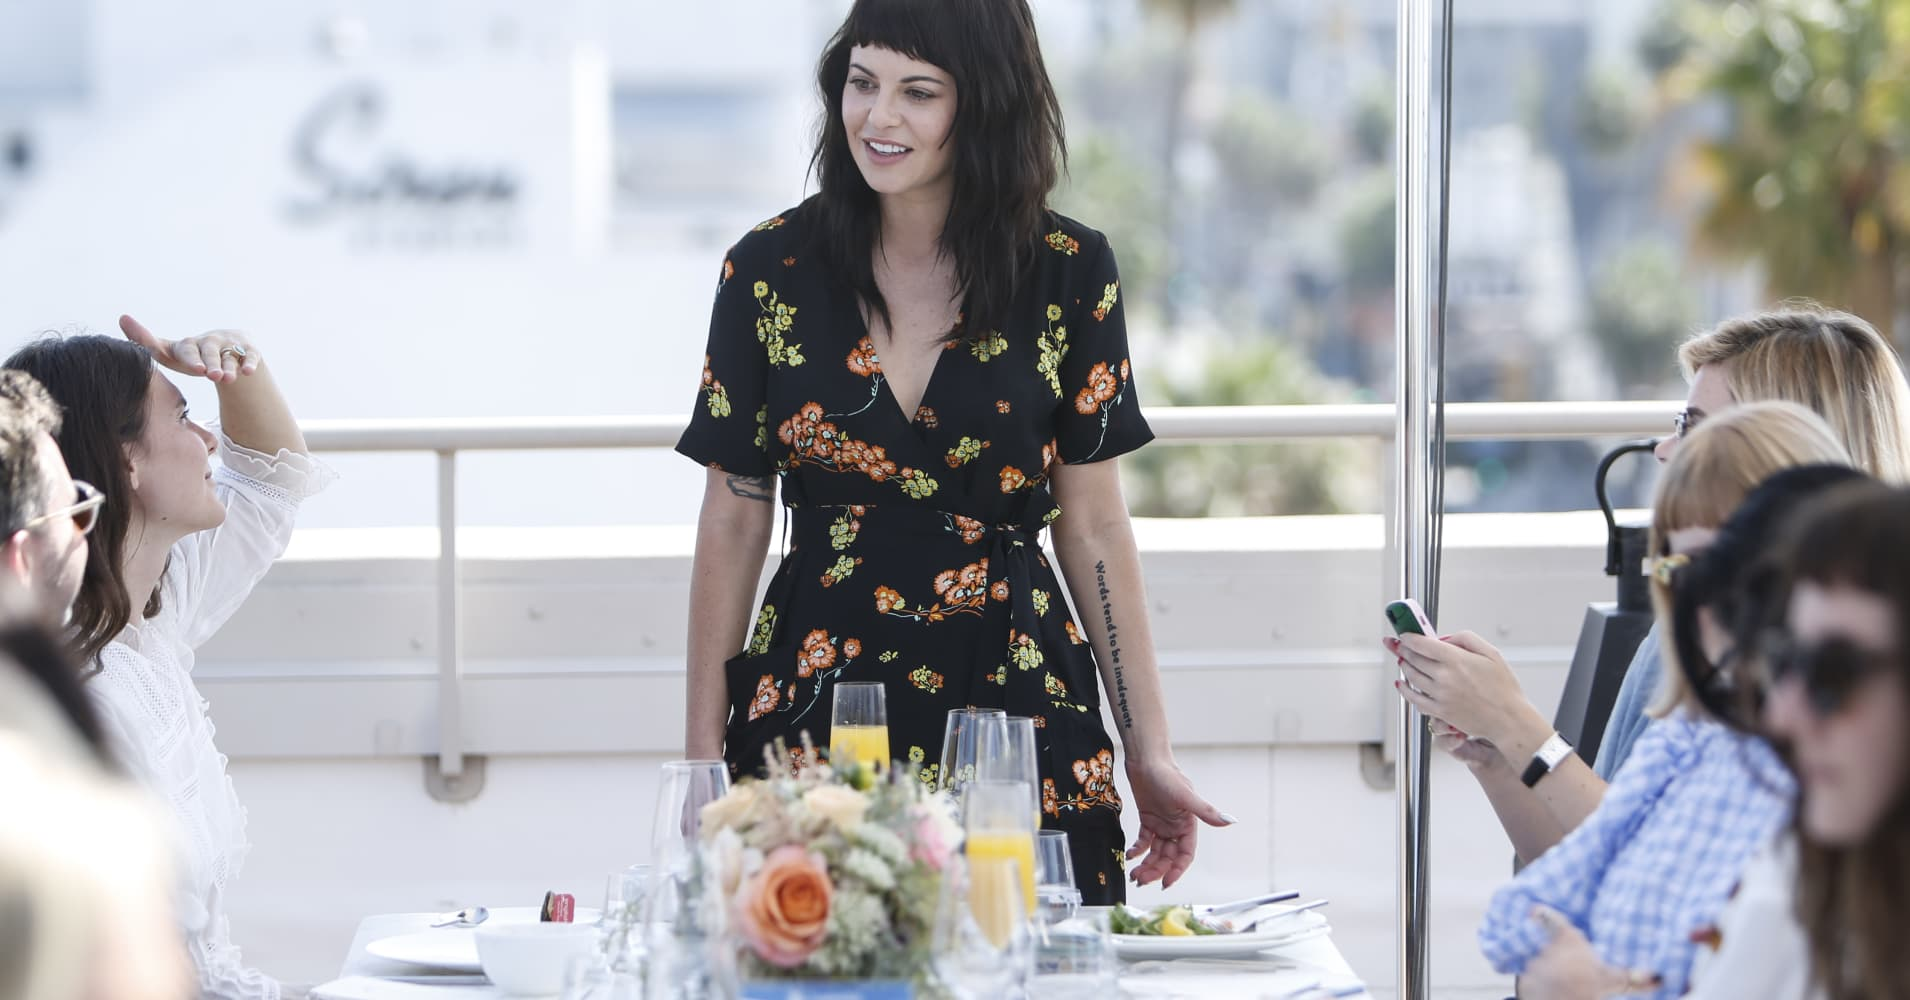 Sophia Amoruso attends Girlboss-Prudential Brunch at NeueHouse Los Angeles on September 9, 2016 in Hollywood, California.